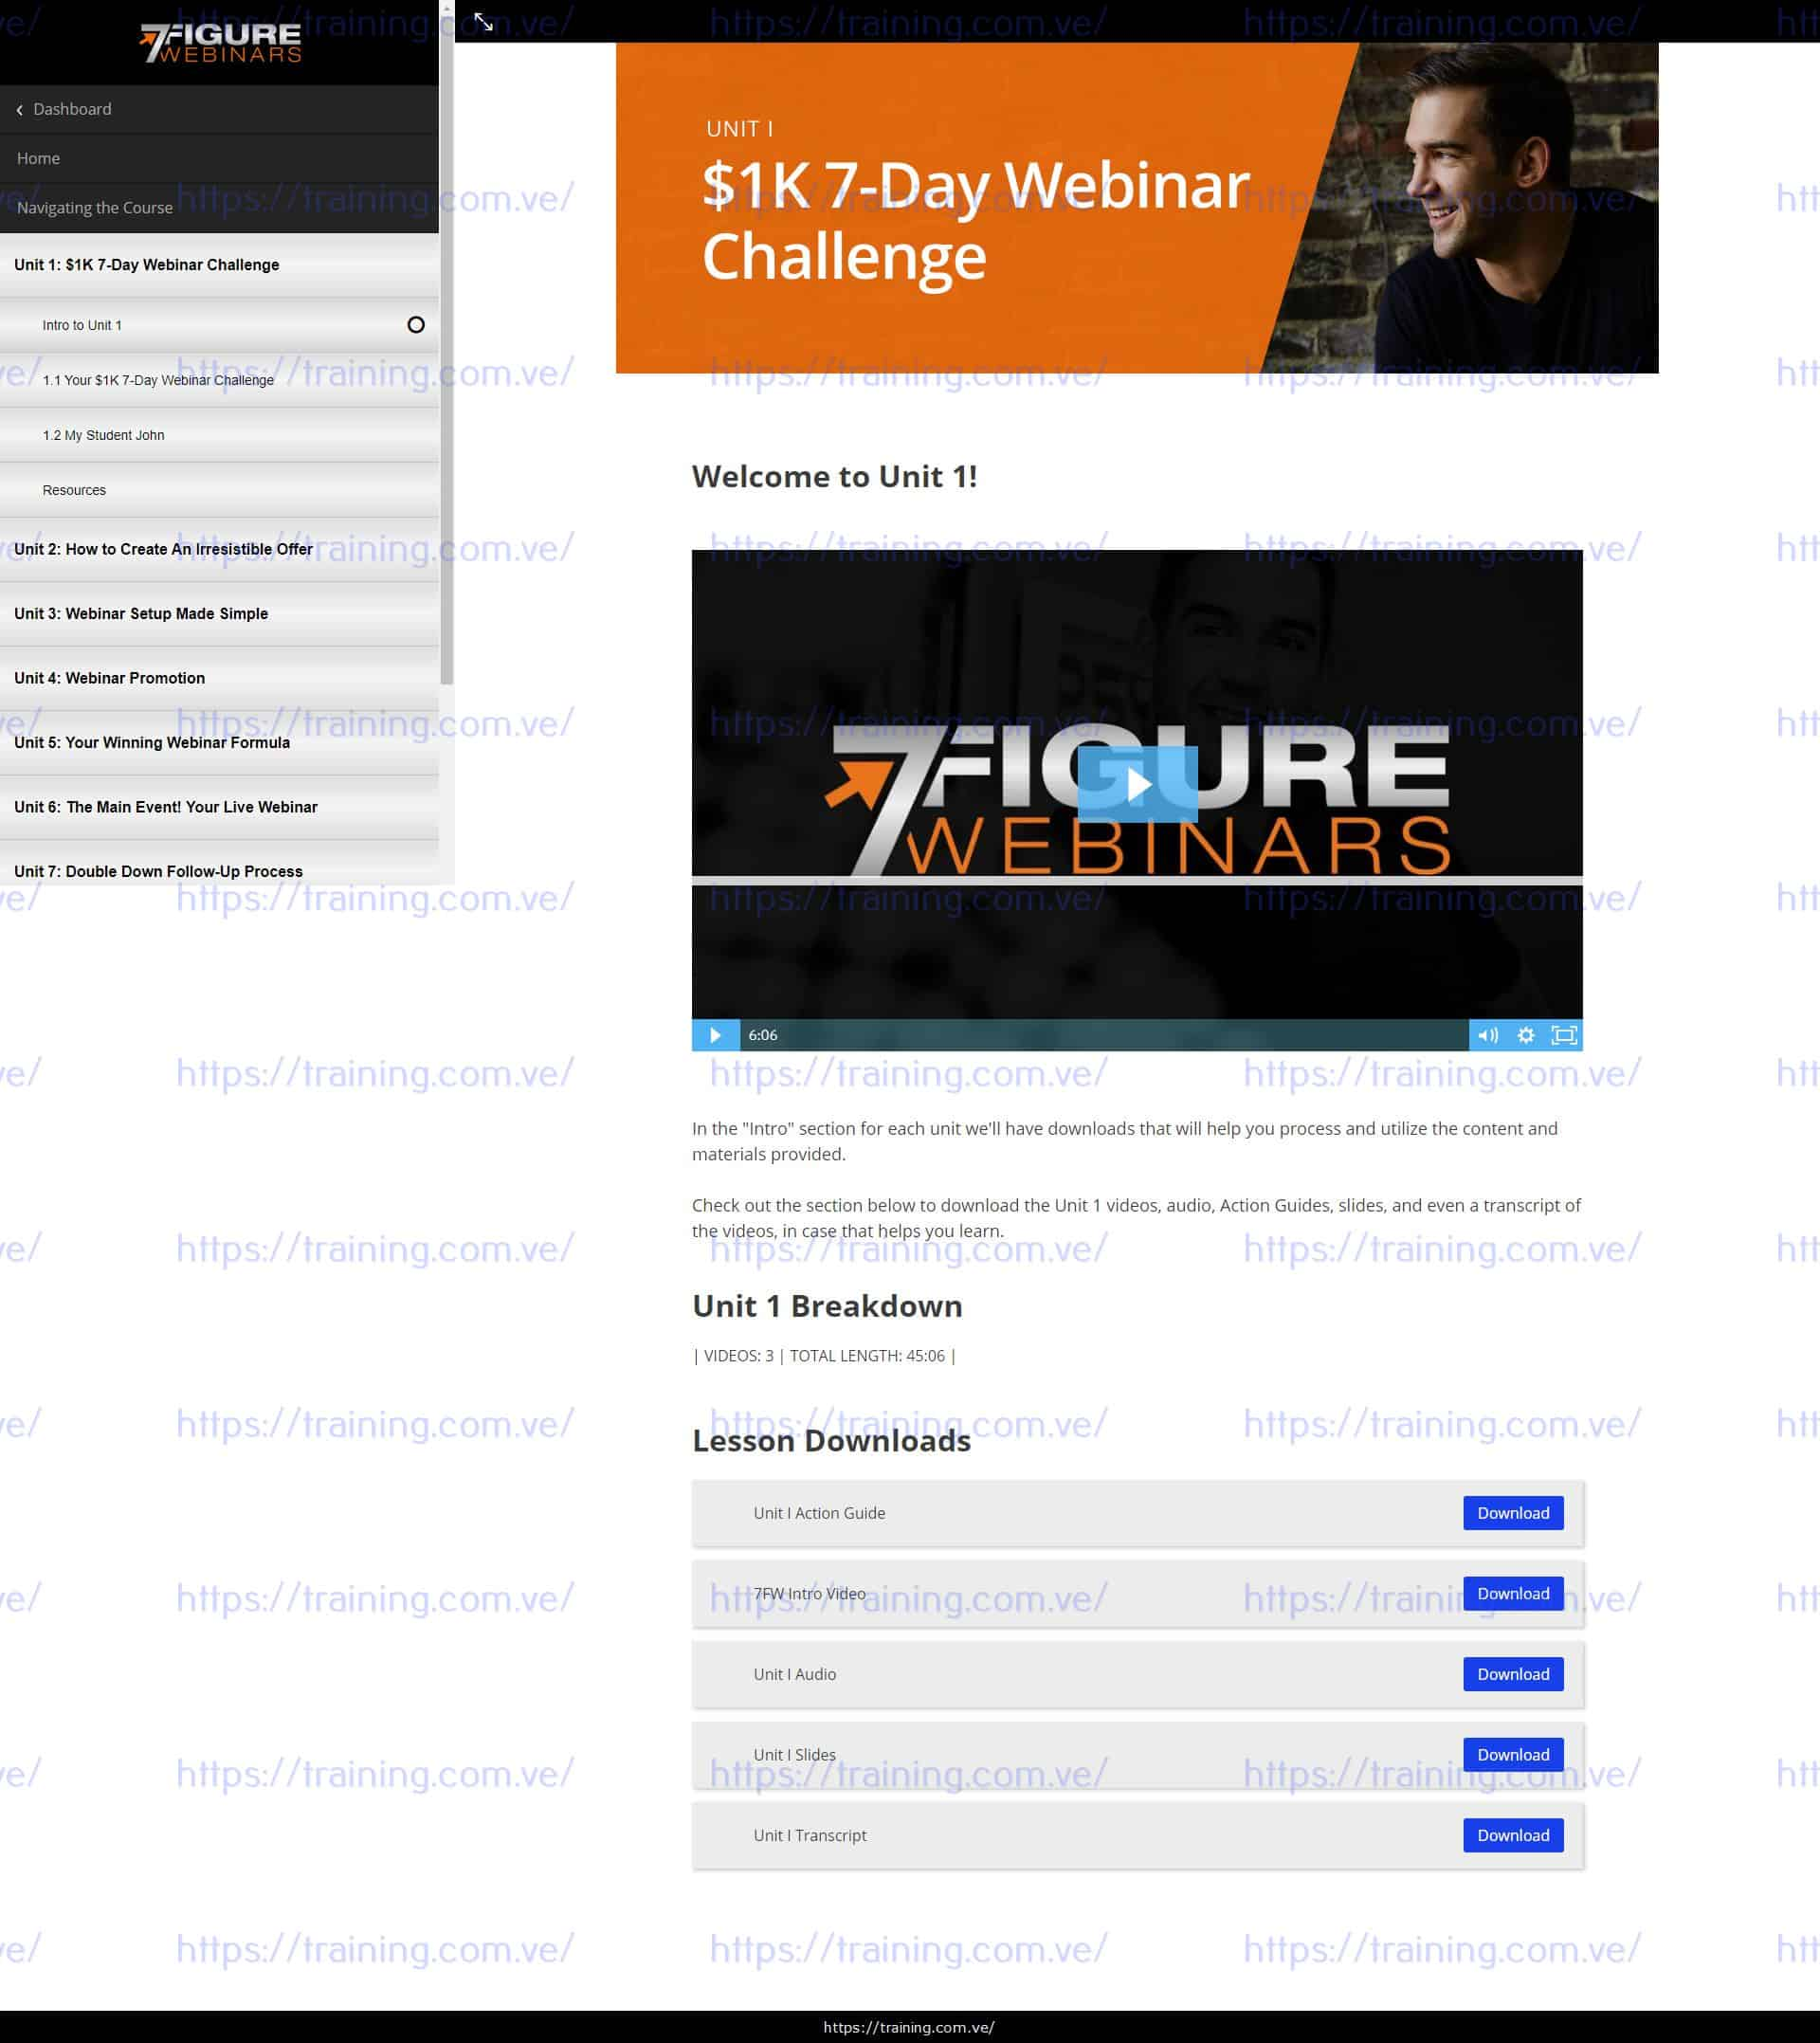 Lewis Howes 7 Figure Webinars Download